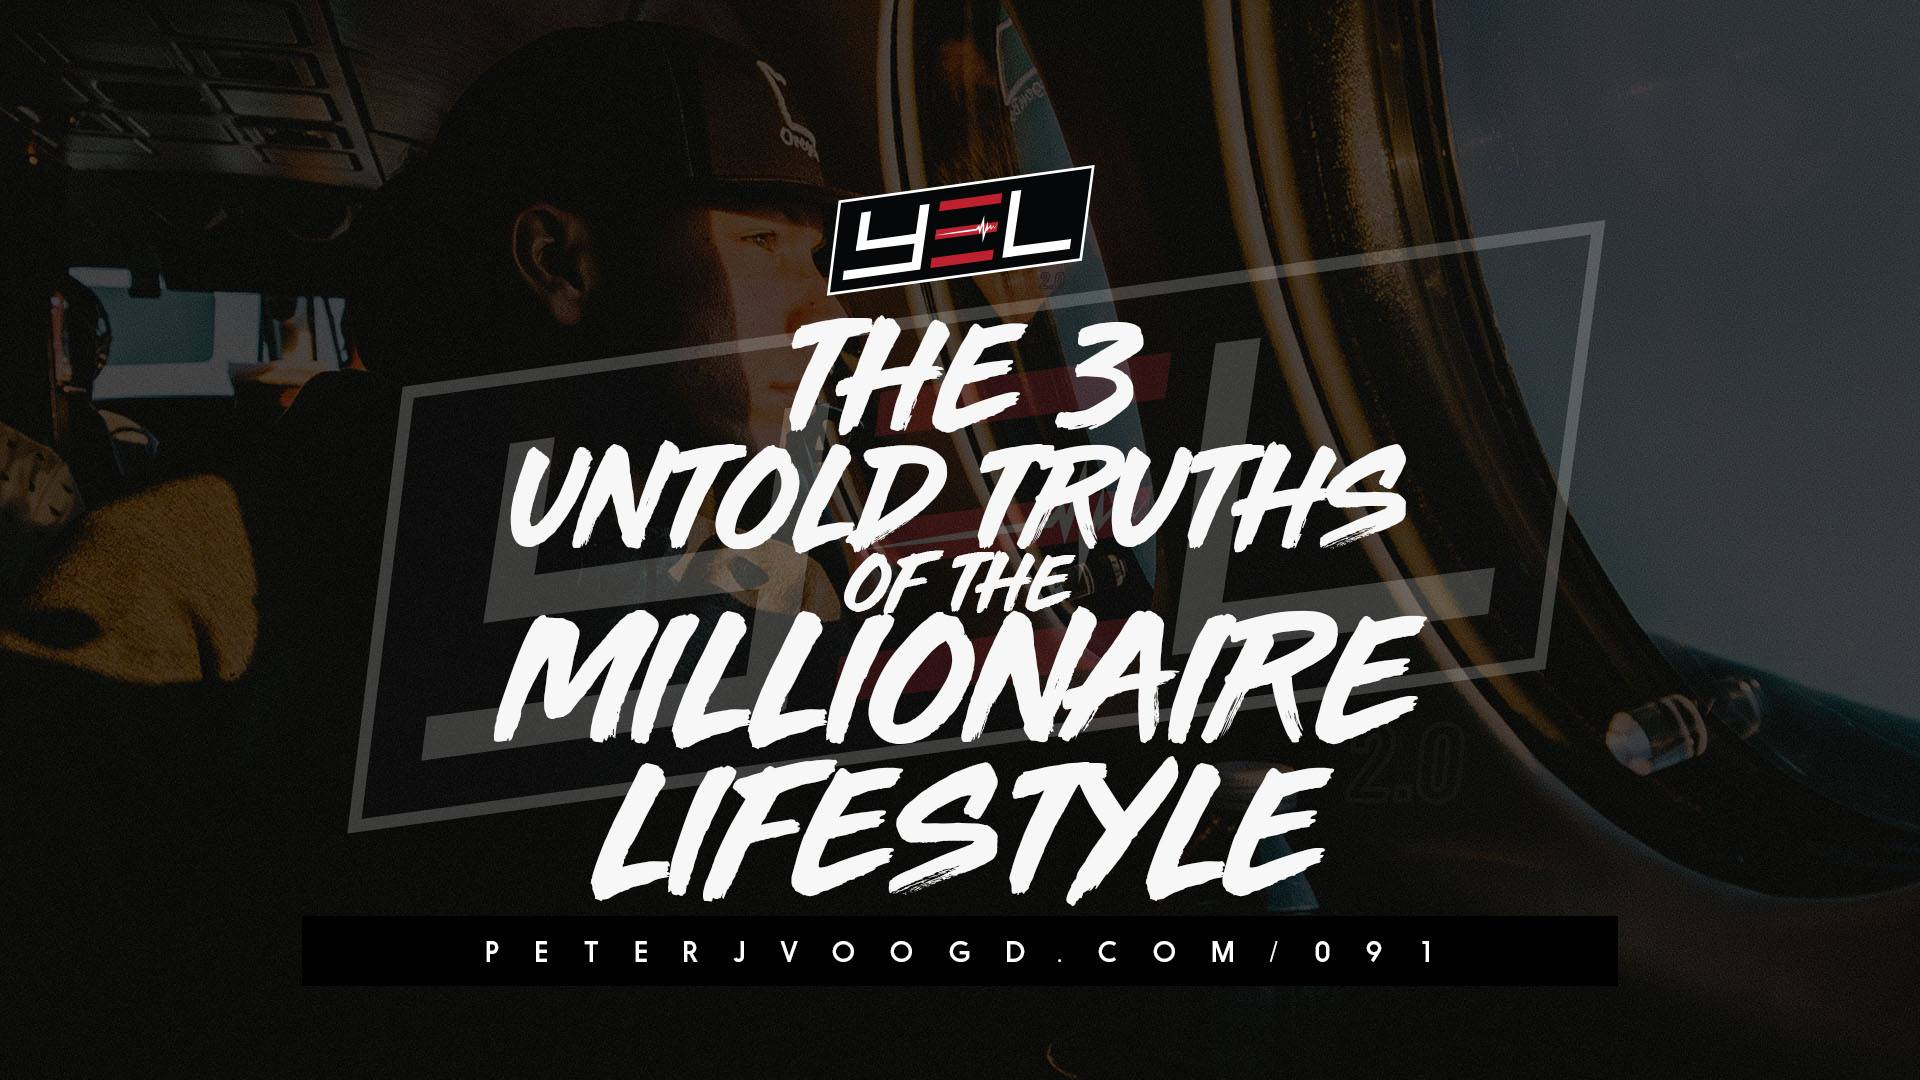 03 May The 3 UNTOLD TRUTHS OF THE MILLIONAIRE LIFESTYLE